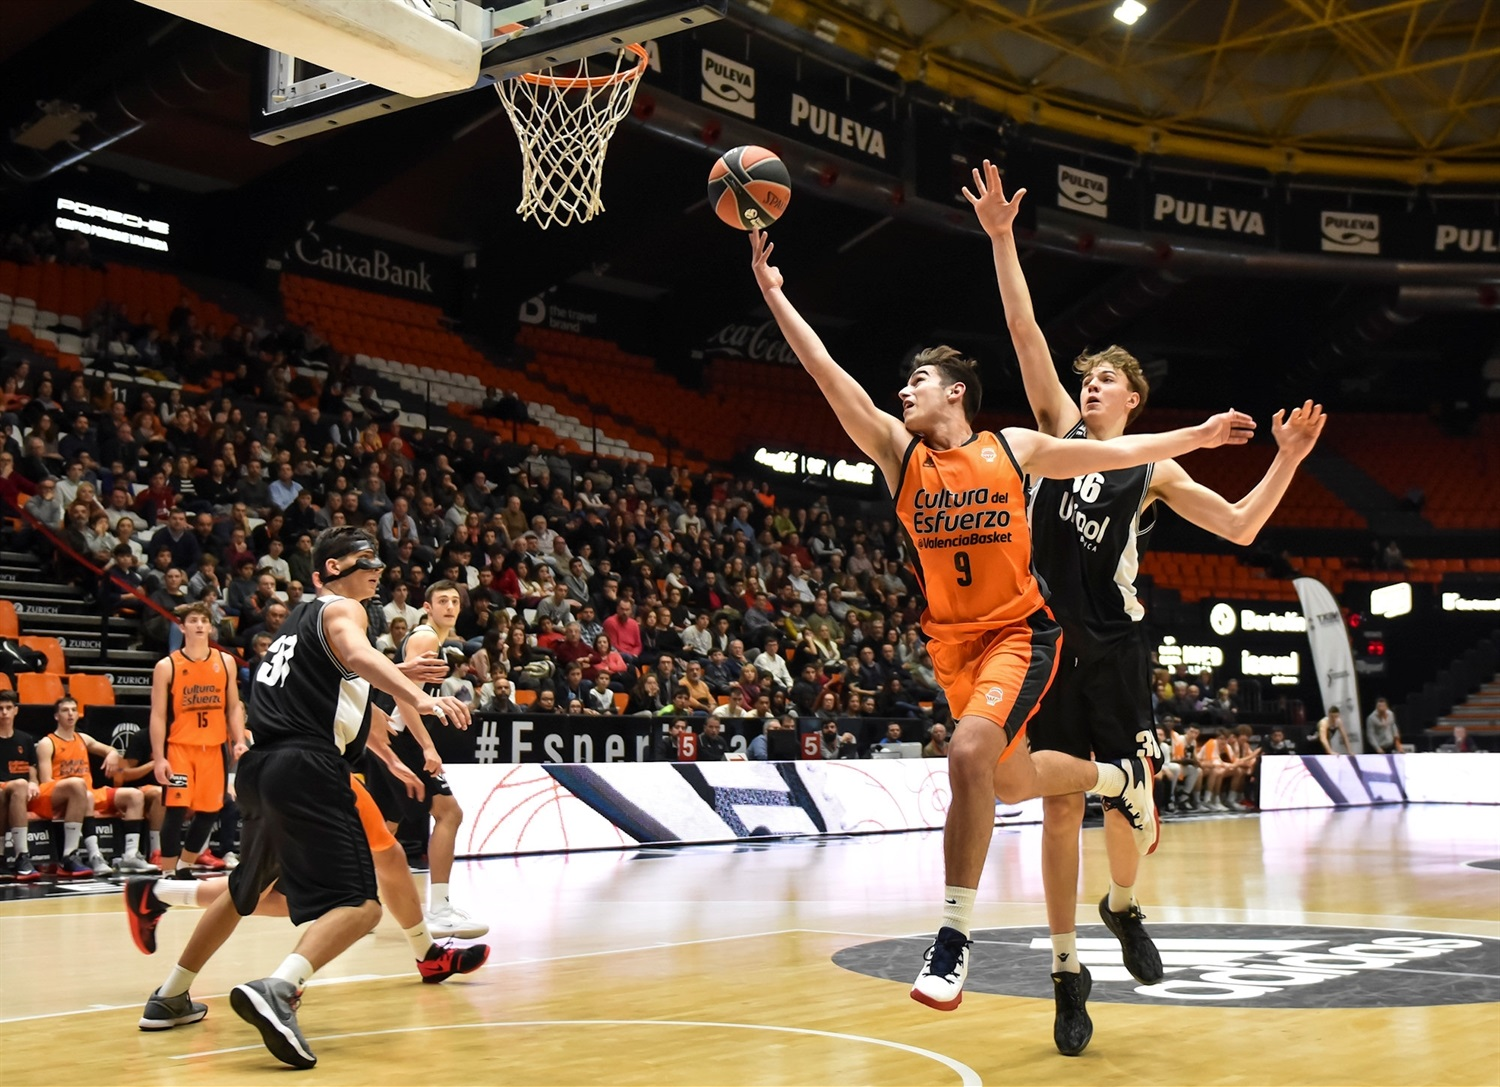 Guillem Ferrando - U18 Valencia Basket (photo Miguel Angel Polo - Valencia) - JT18